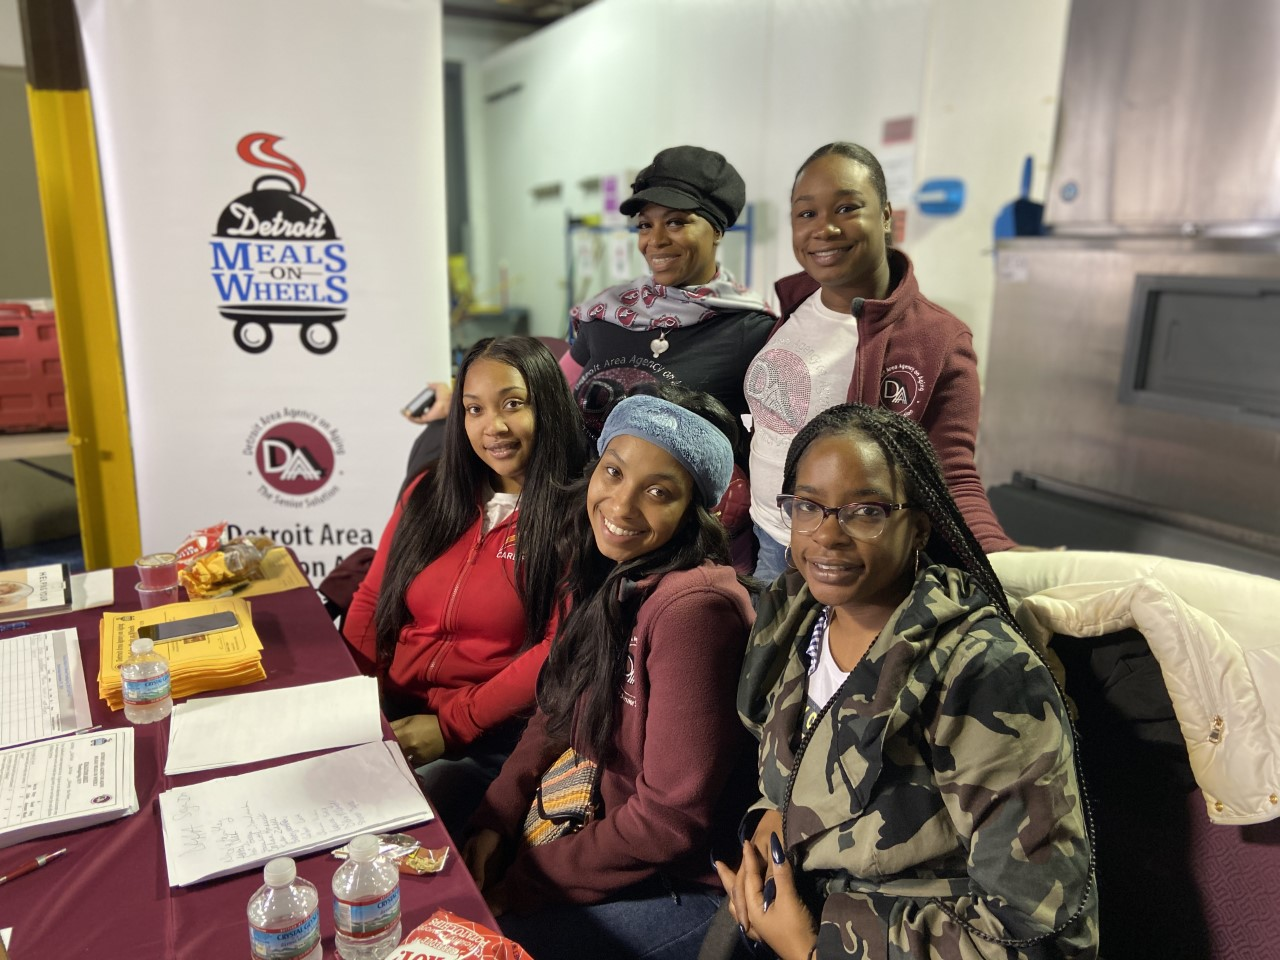 A group of DAAA volunteers at a Meals on Wheels event